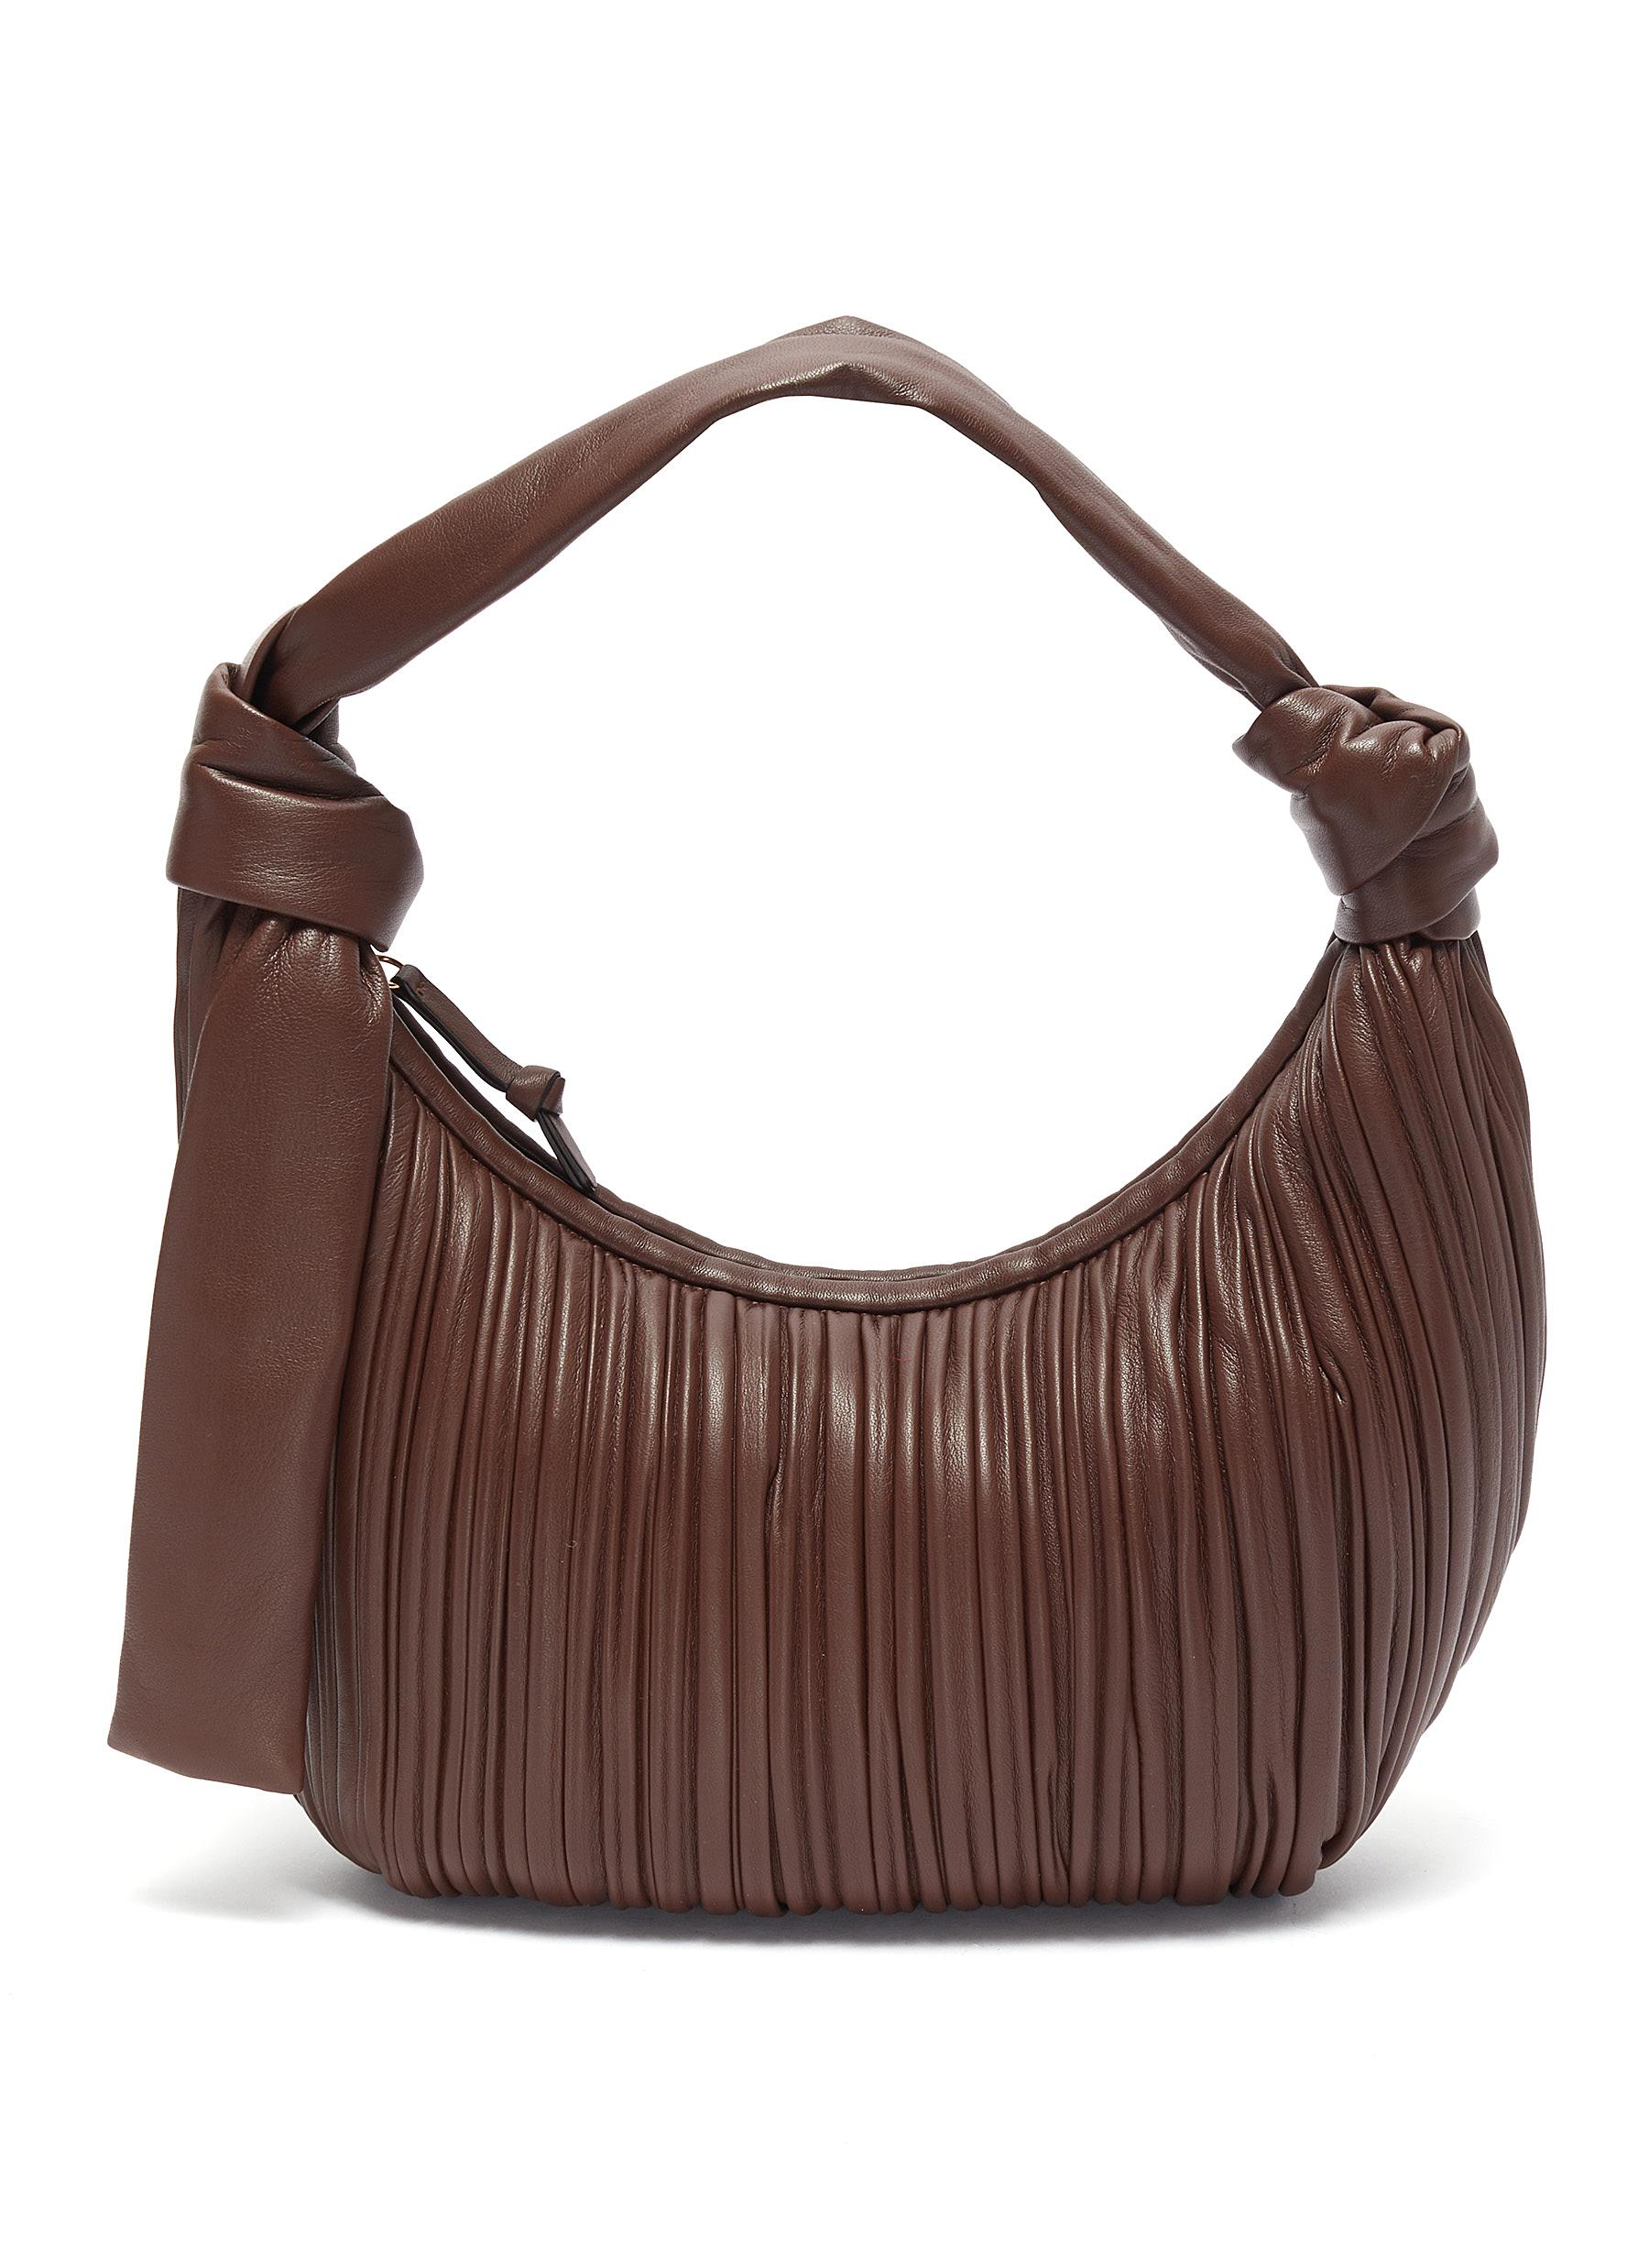 Neous 'NEPTUNE' PLEATED LEATHER HOBO BAG